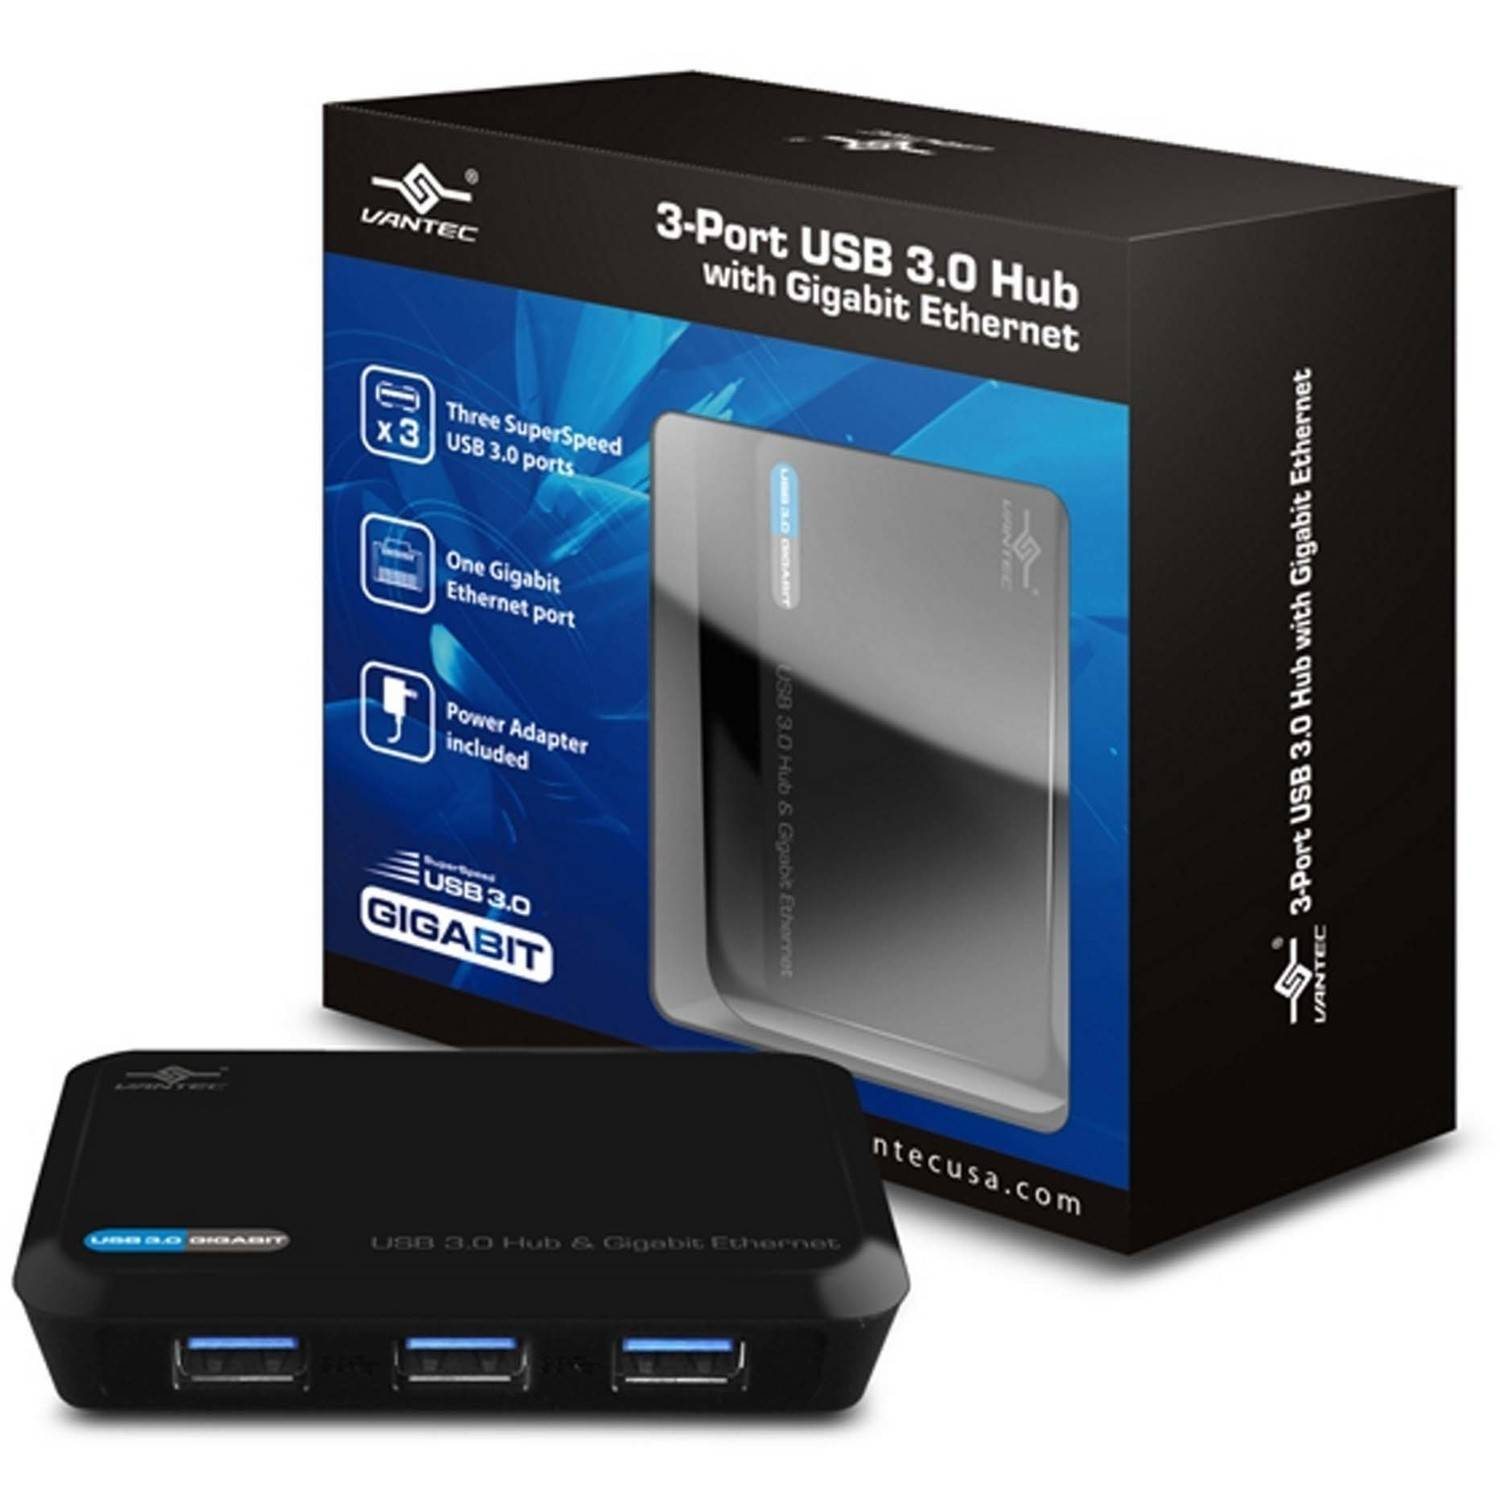 Vantec UGT-MH330GNA 3-Port USB 3.0 Hub with Gigabit Ethernet Port, Black